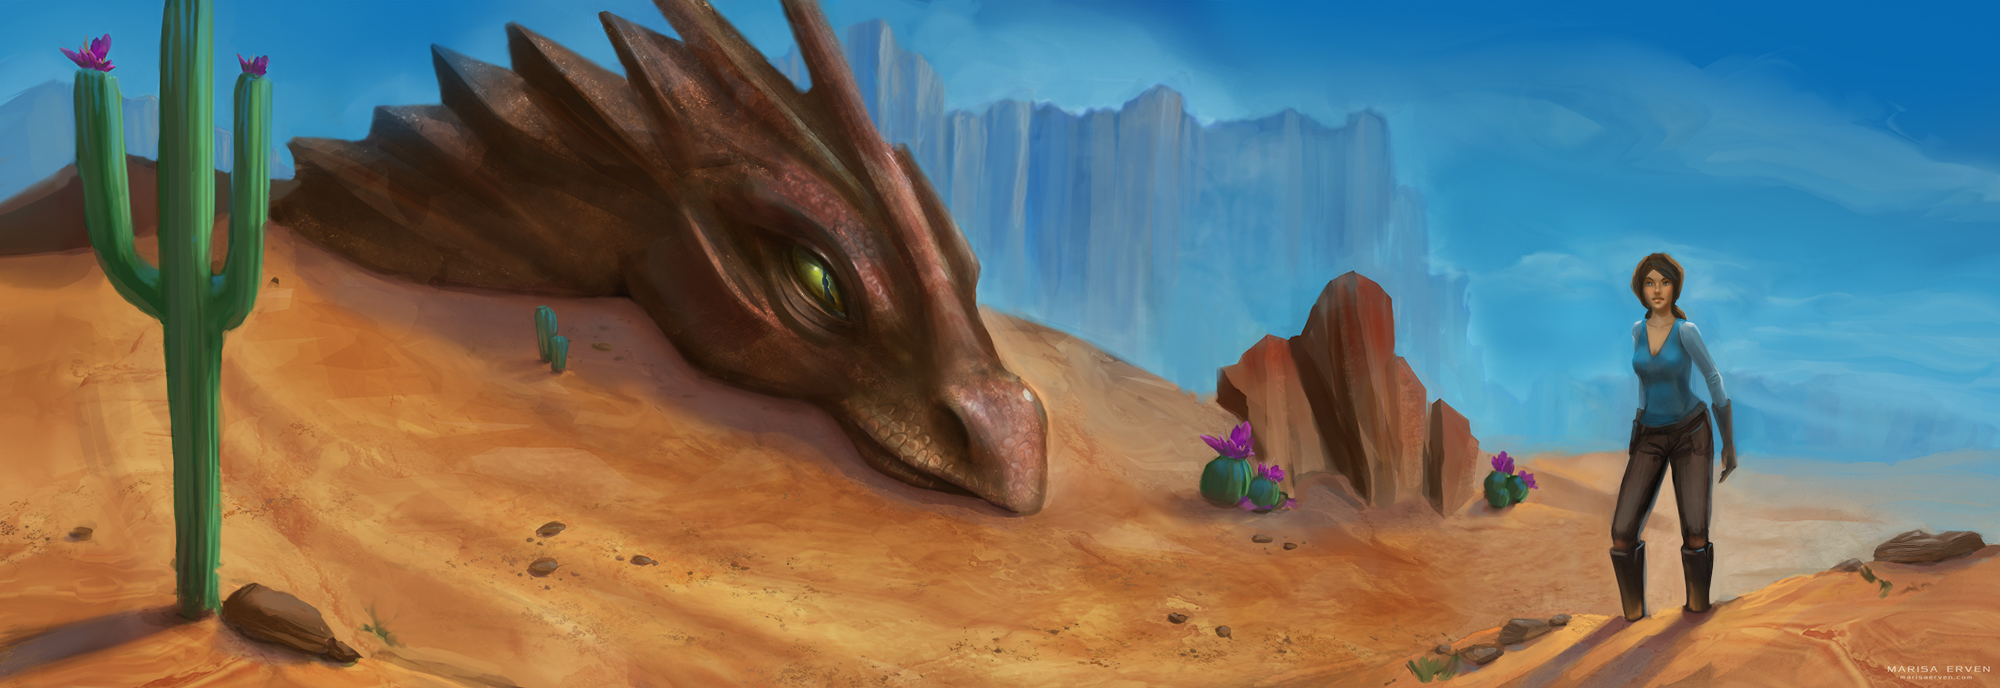 dragon observing desert explorer